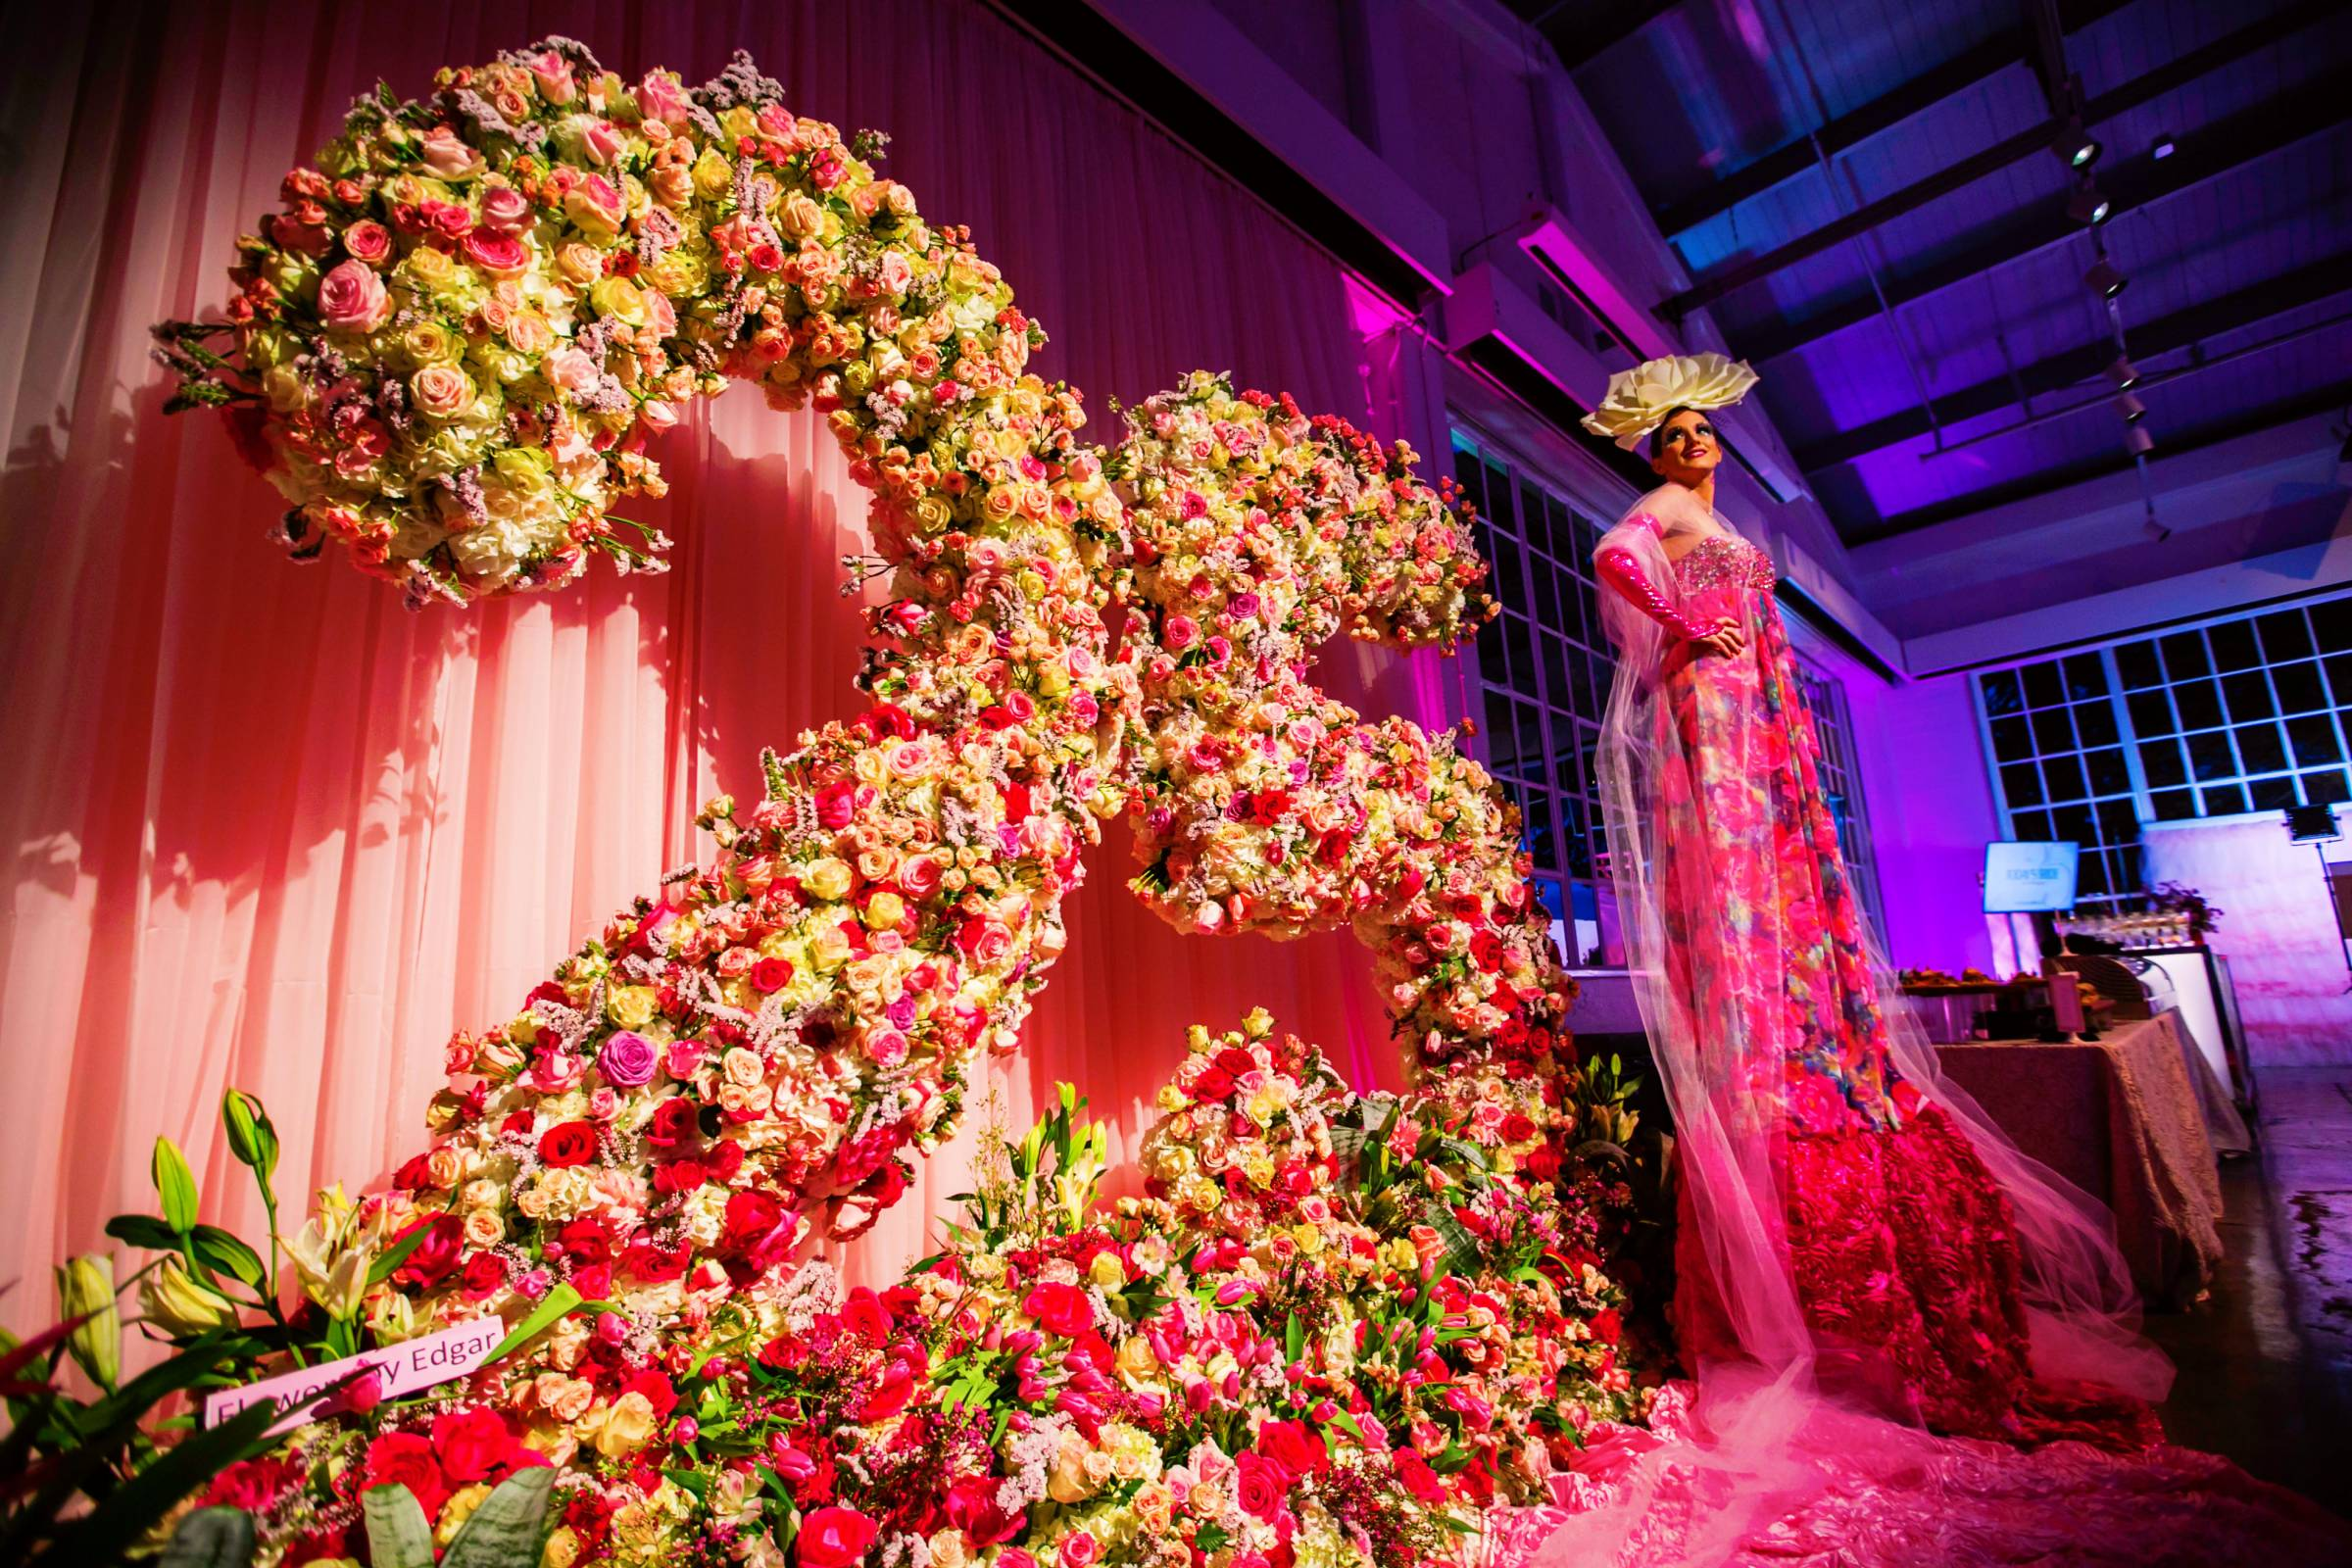 Giant number 25 floral display